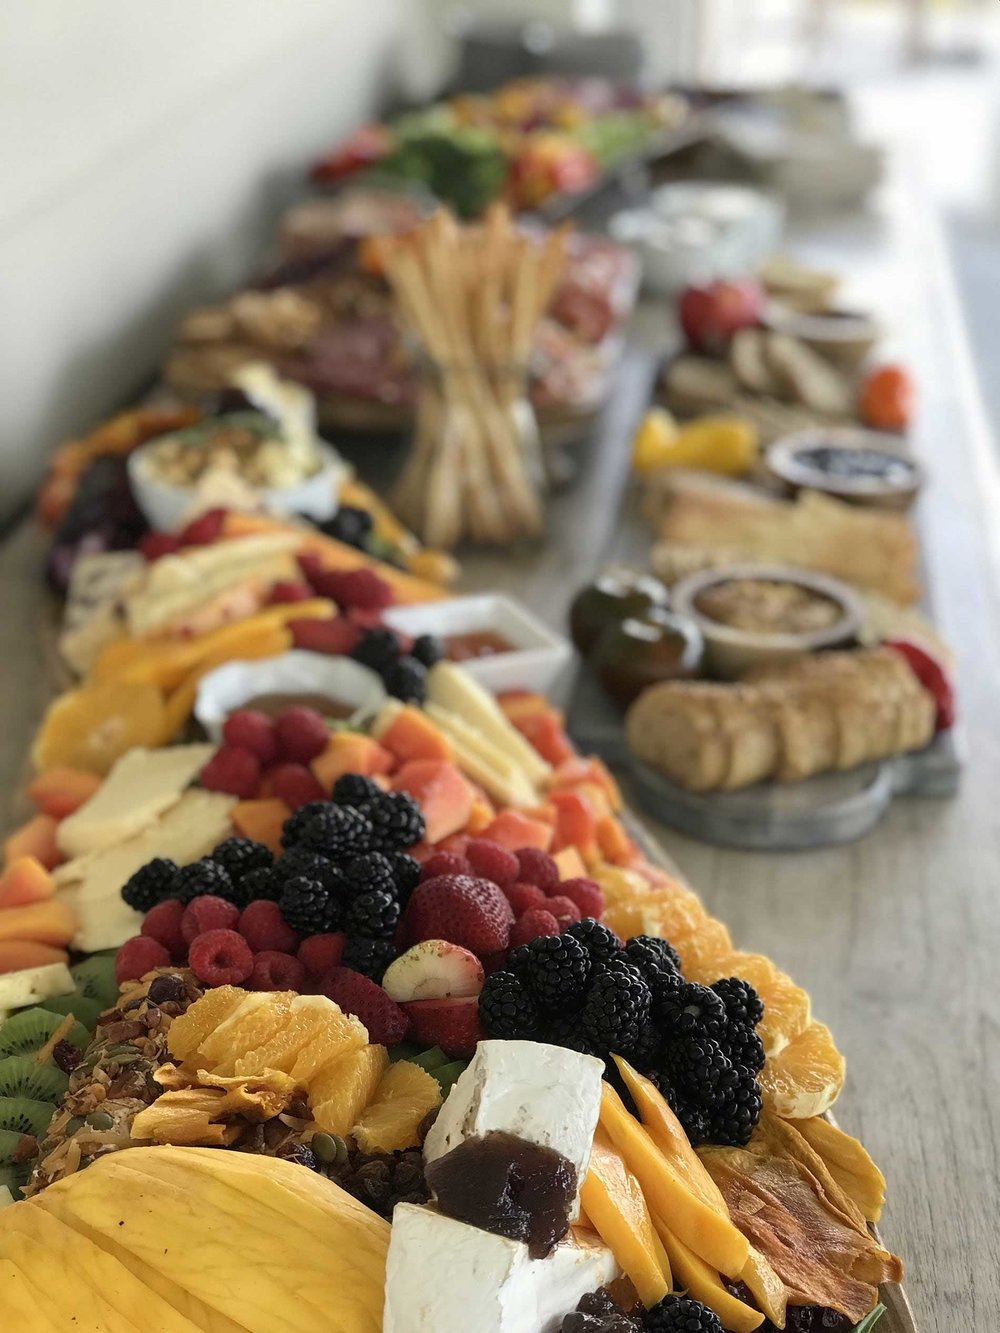 Charcuterie at Larry's 50th Birthday Party, Palmetto Bluff, SC.